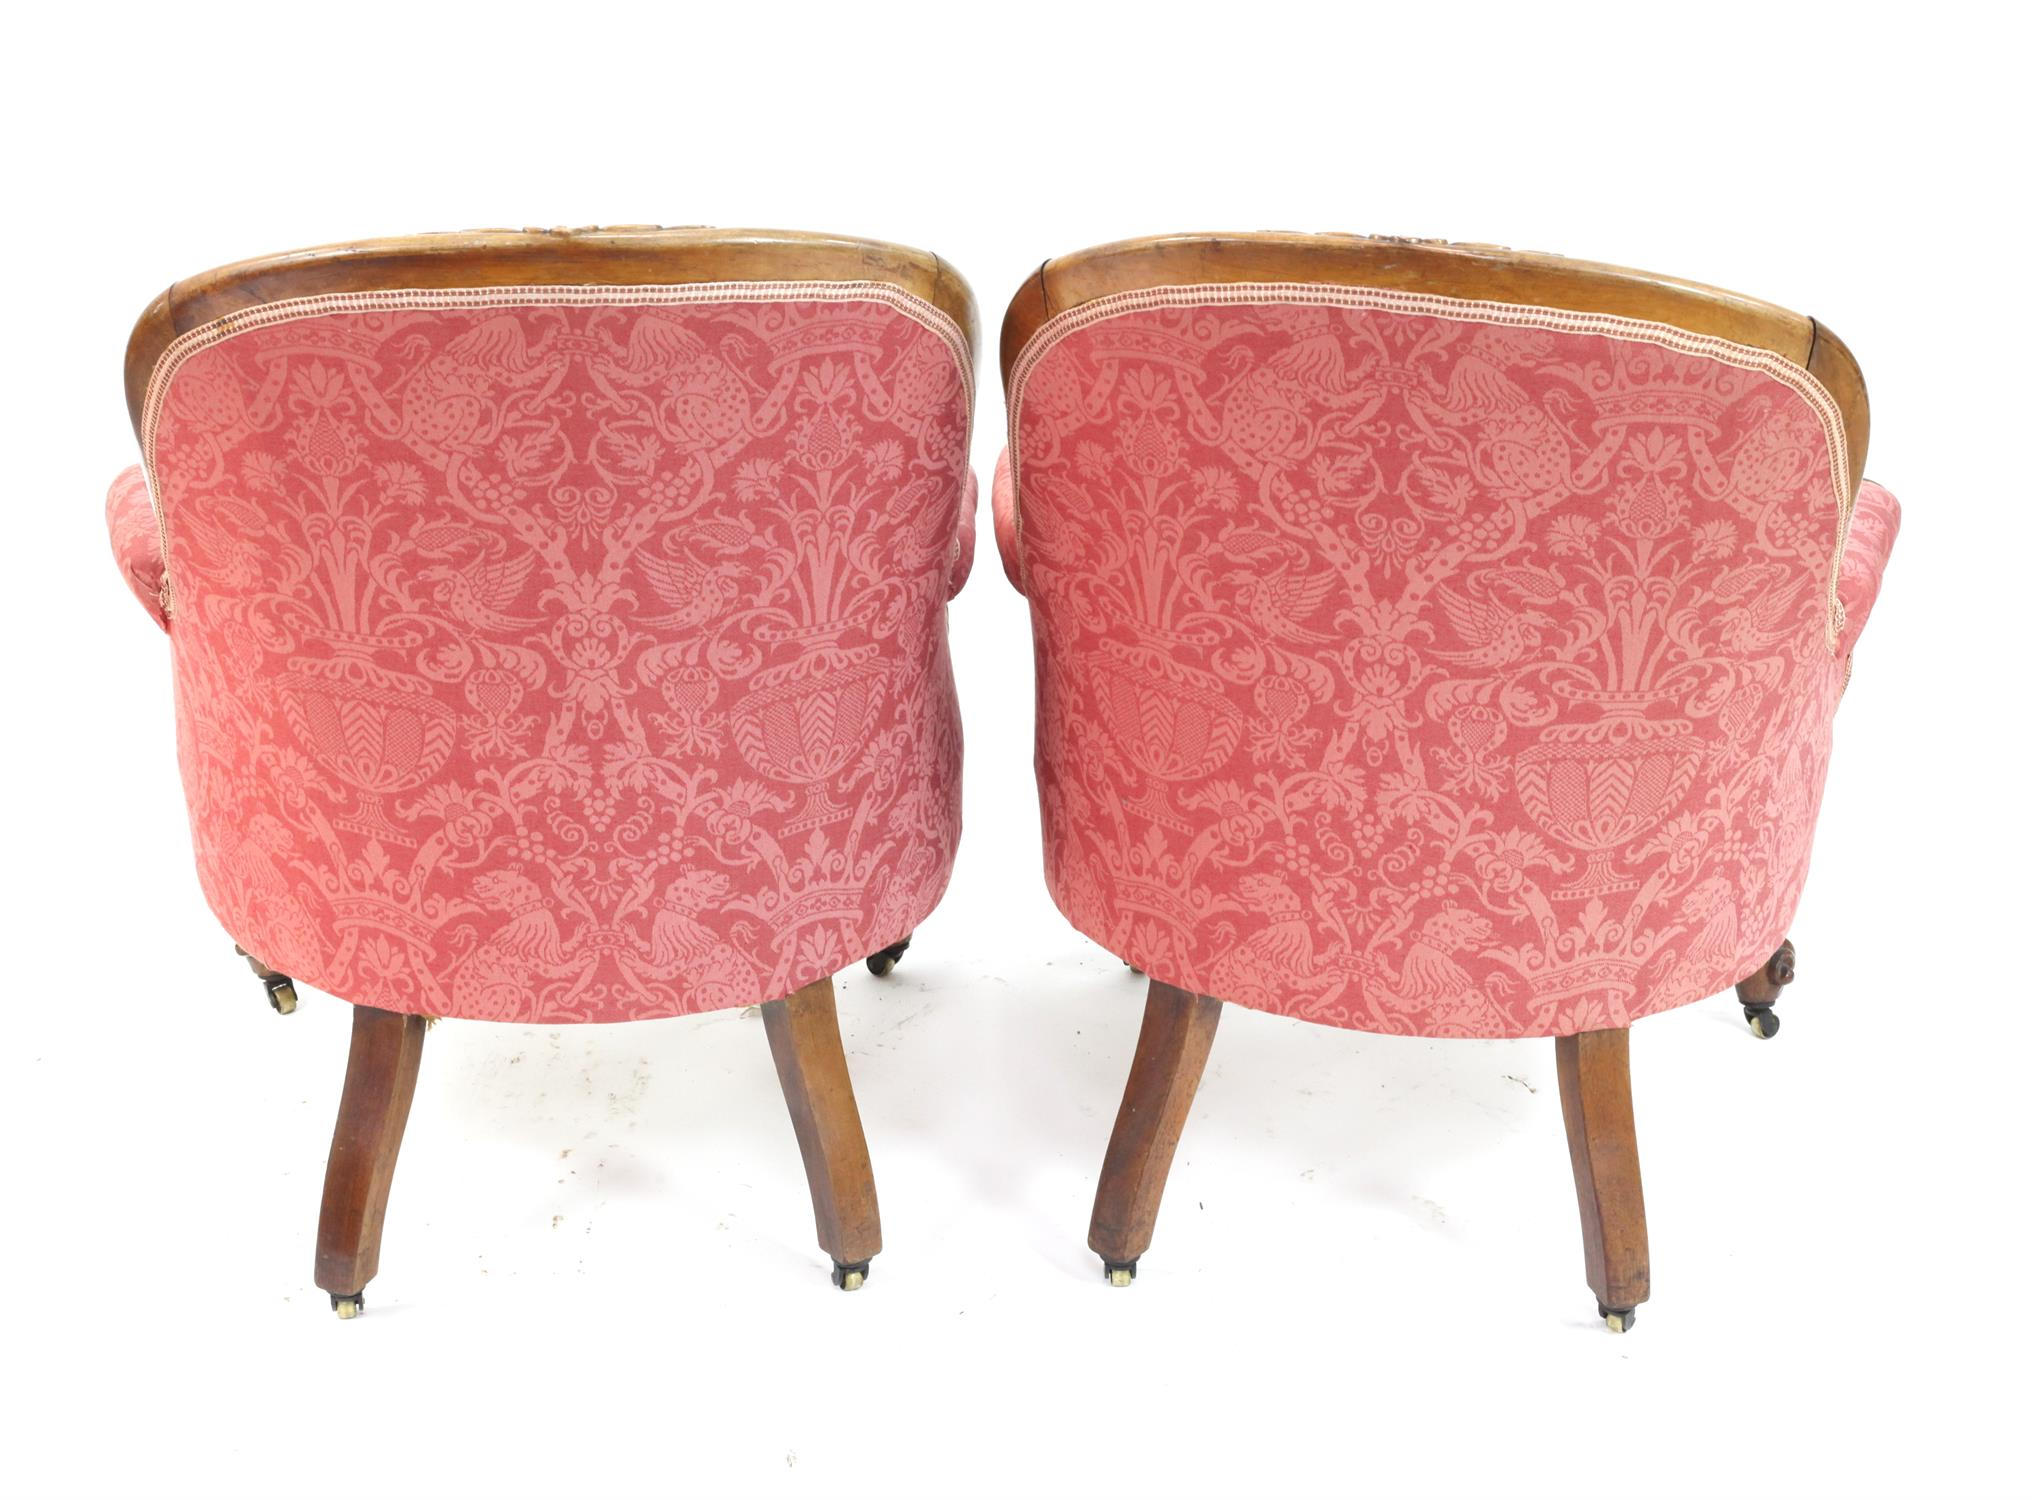 Pair of Victorian rosewood armchairs, with floral upholstery and scroll arms on cabriole legs and - Image 2 of 2